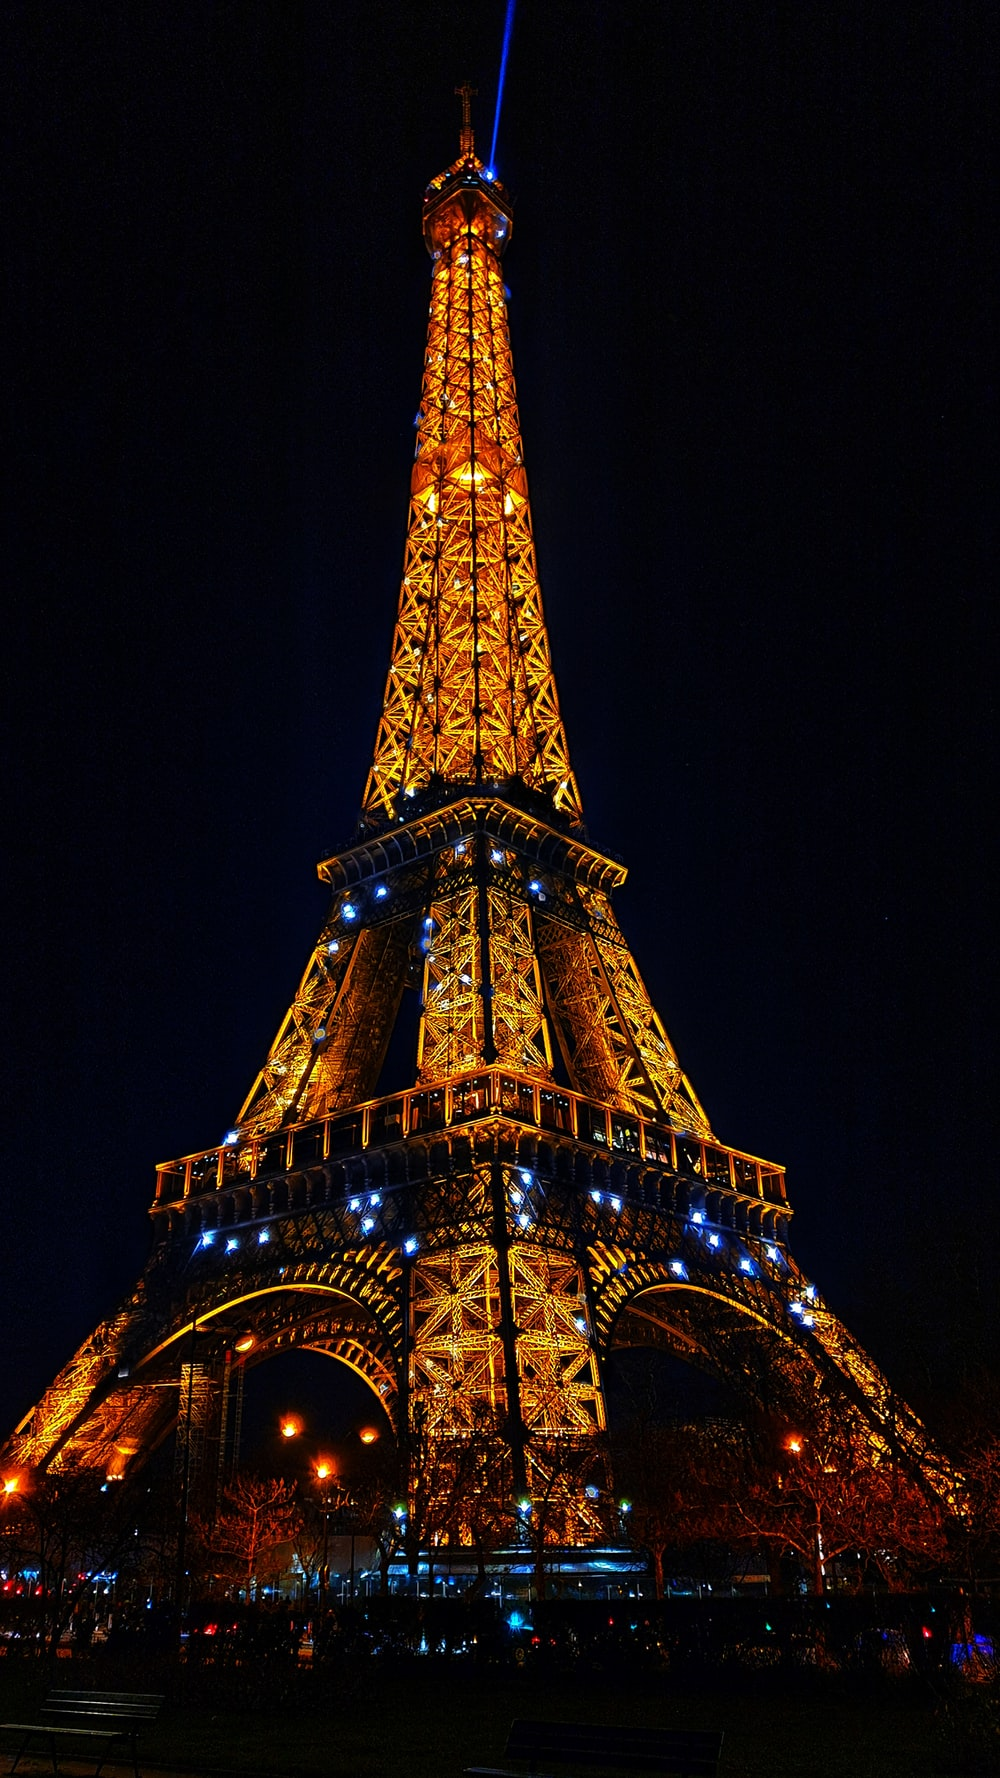 eiffel tower with lights during night time